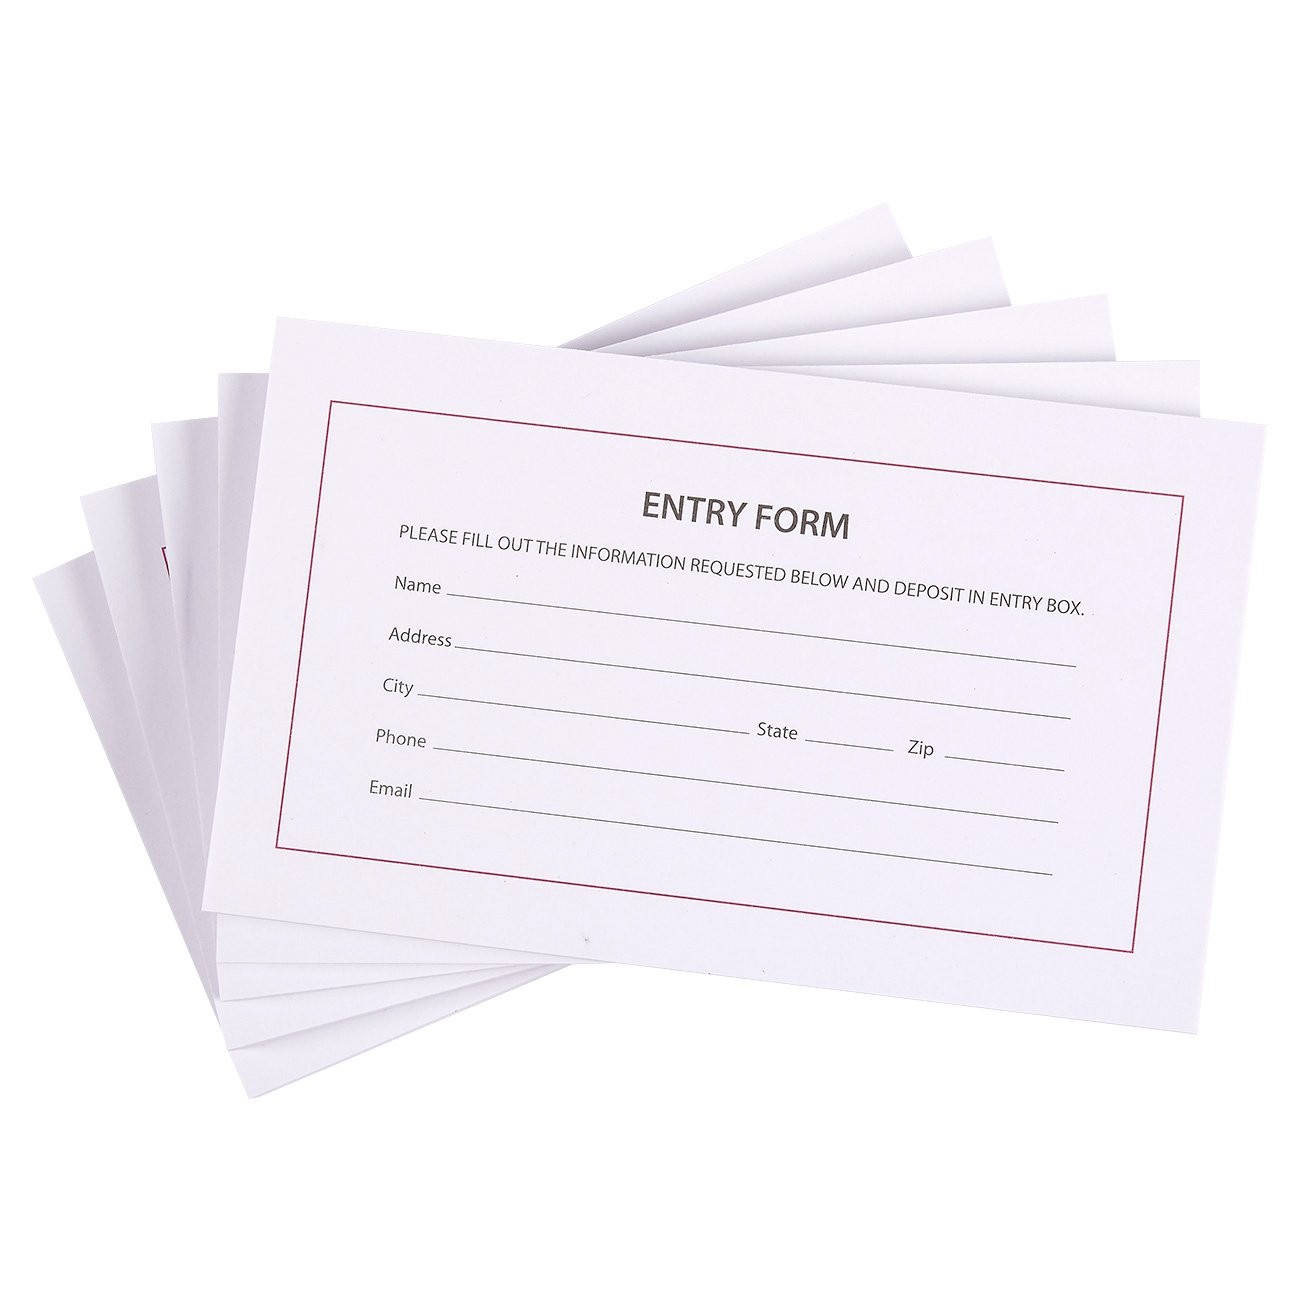 500 Entry Forms - 5 Pads with 100 Sheets Per Pad - Entry Cards for Contests, Raffles, Ballots, Drawings, 6.2 x 3.7 Inches